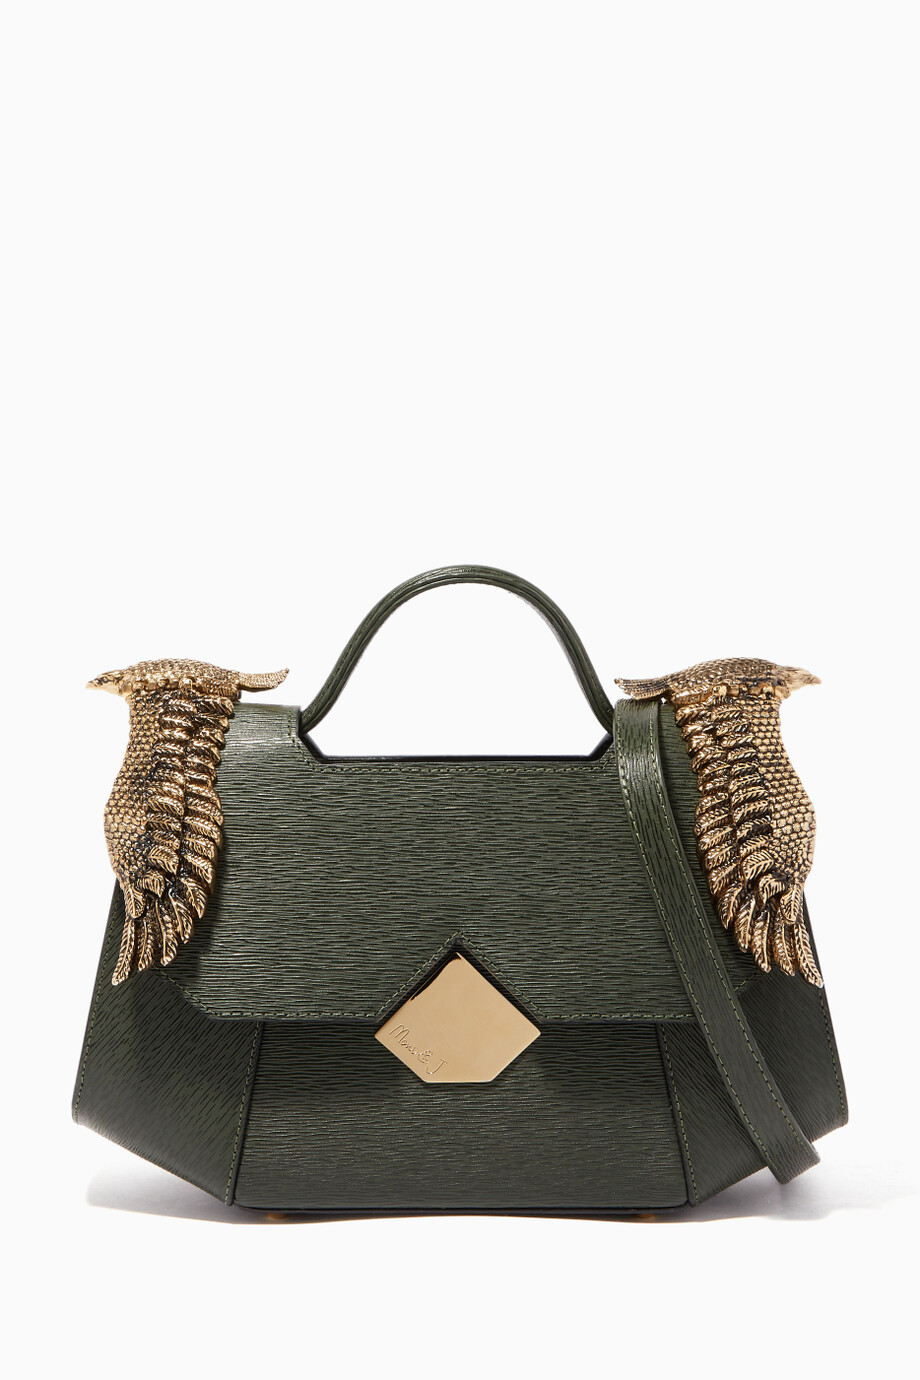 e8888e32aa Shop Moni   J Green Olive Green Baby Colonel Lizard-Effect ...